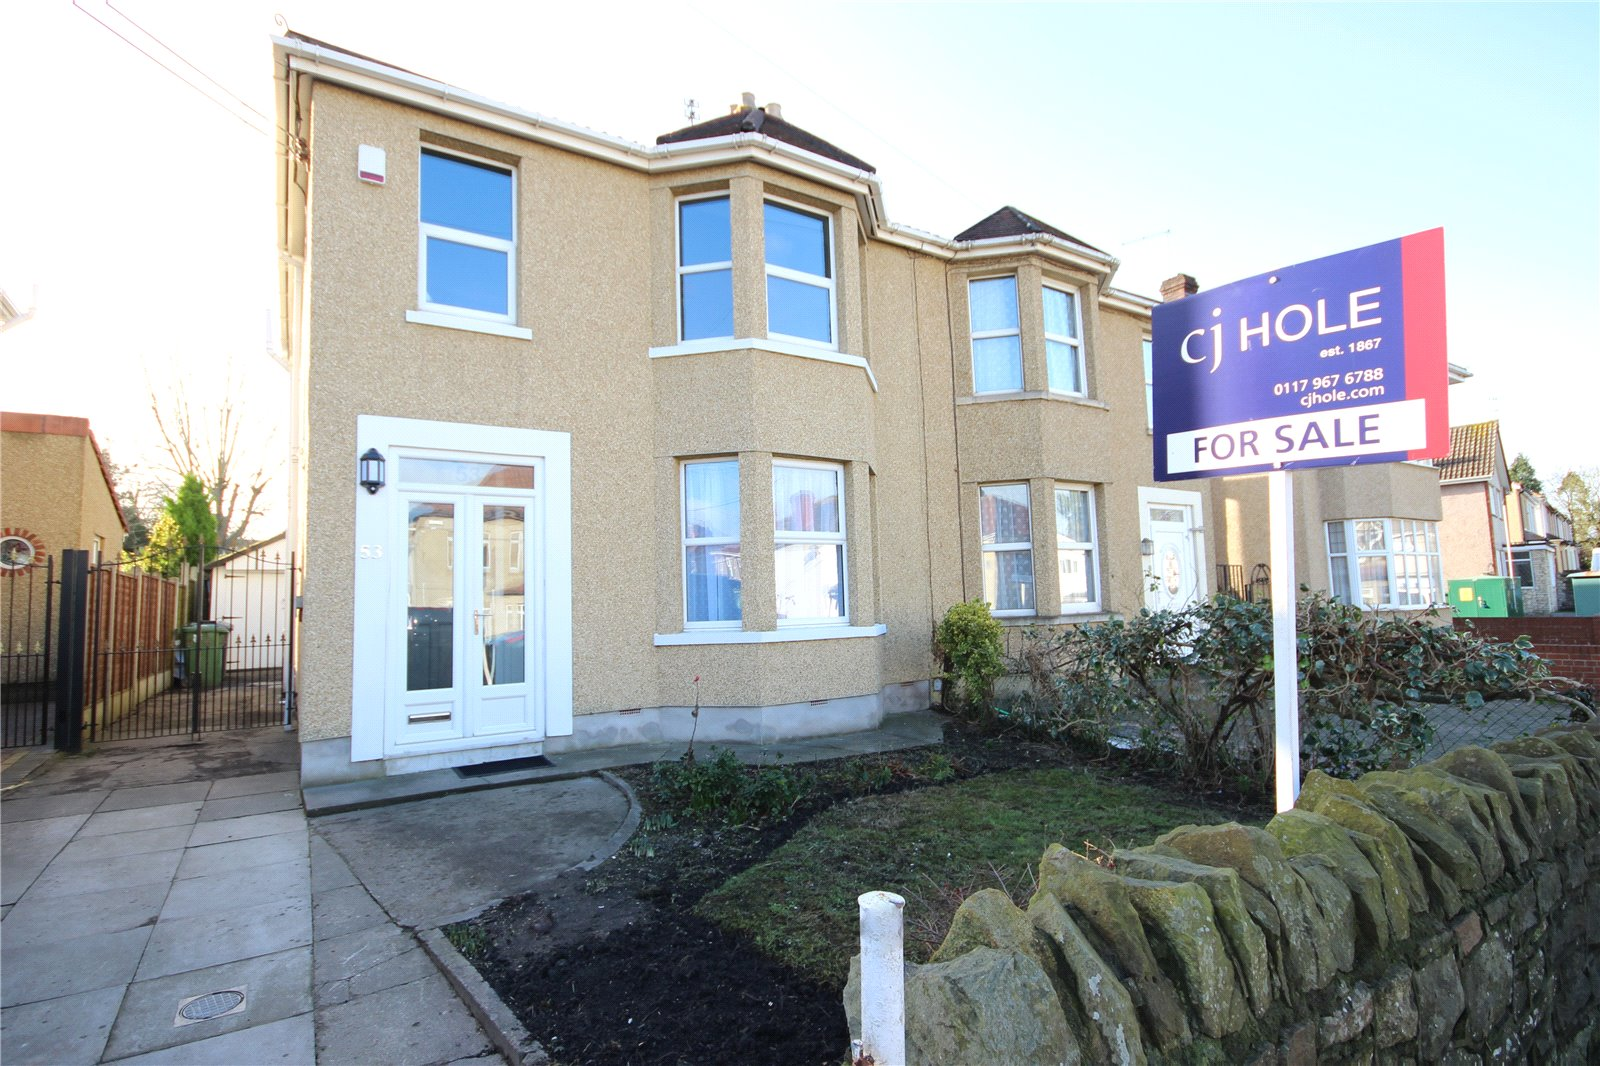 Cj Hole Kingswood 3 Bedroom House For Sale In Pool Road Kingswood Bristol Bs15 Cj Hole